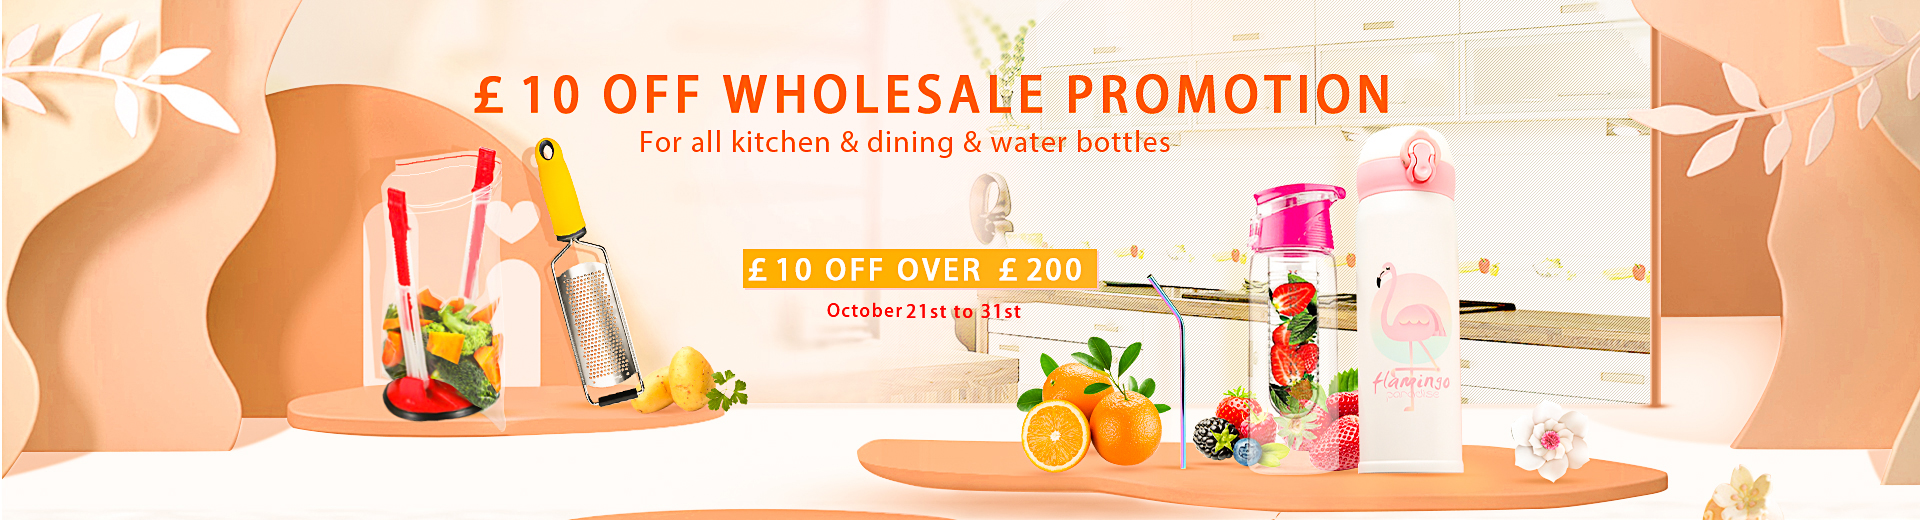 Kitchen-Dining Wholesale Promotion